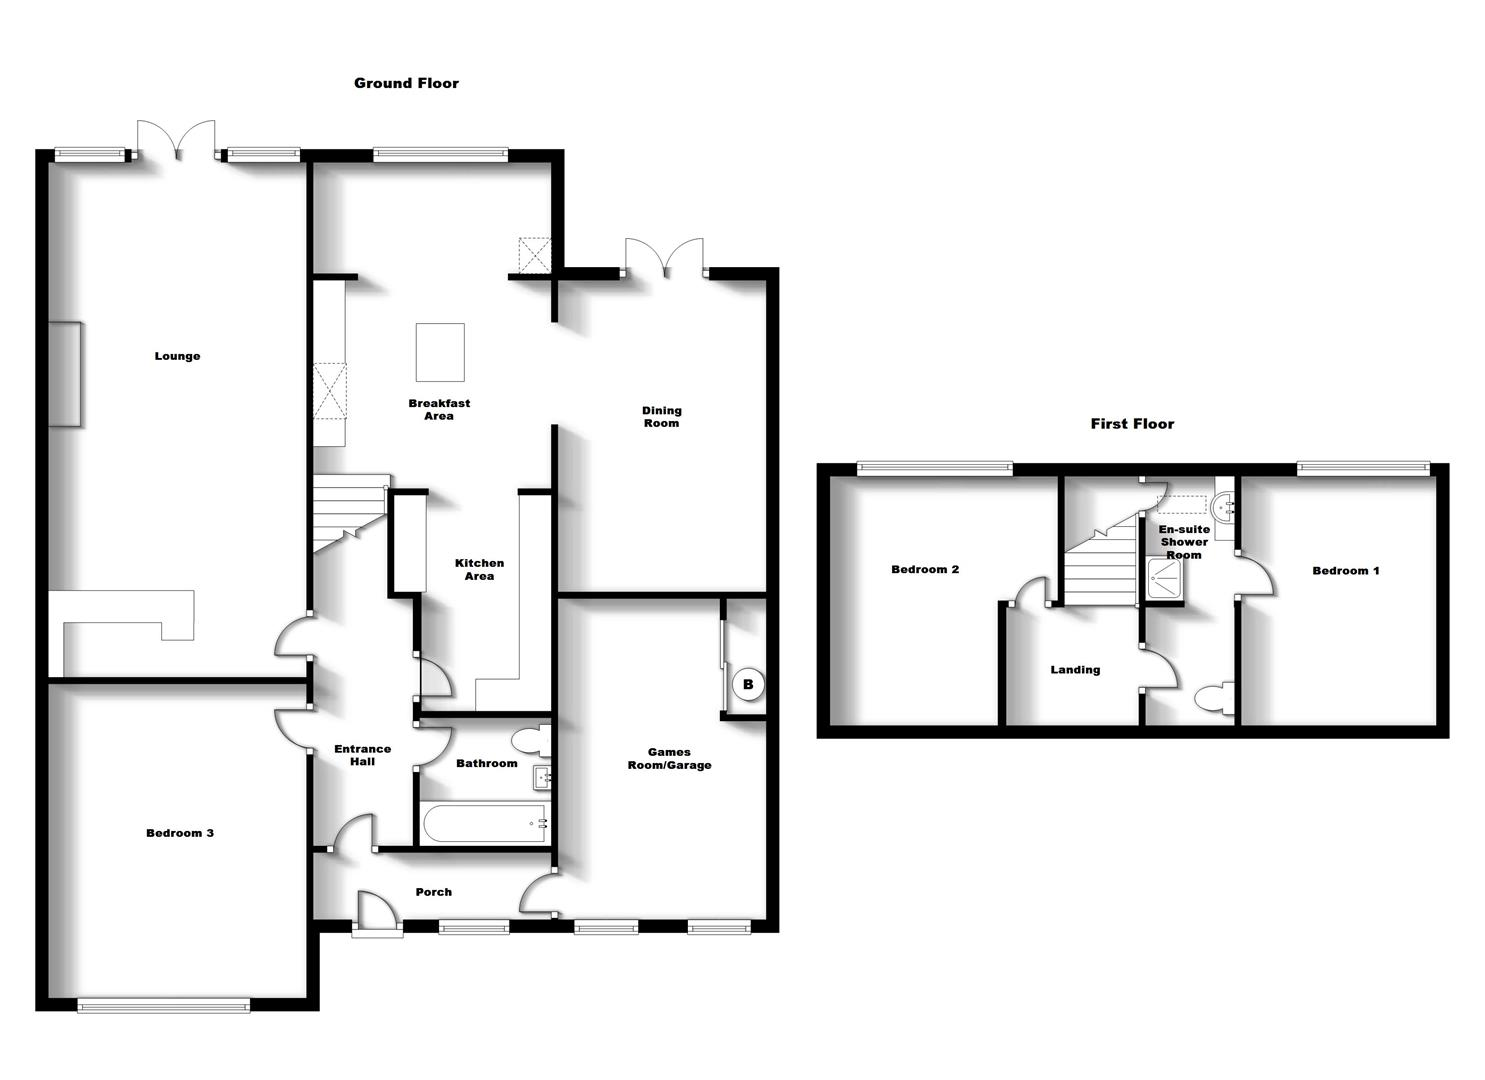 Floorplans For Orchard Way, Bilton, Rugby